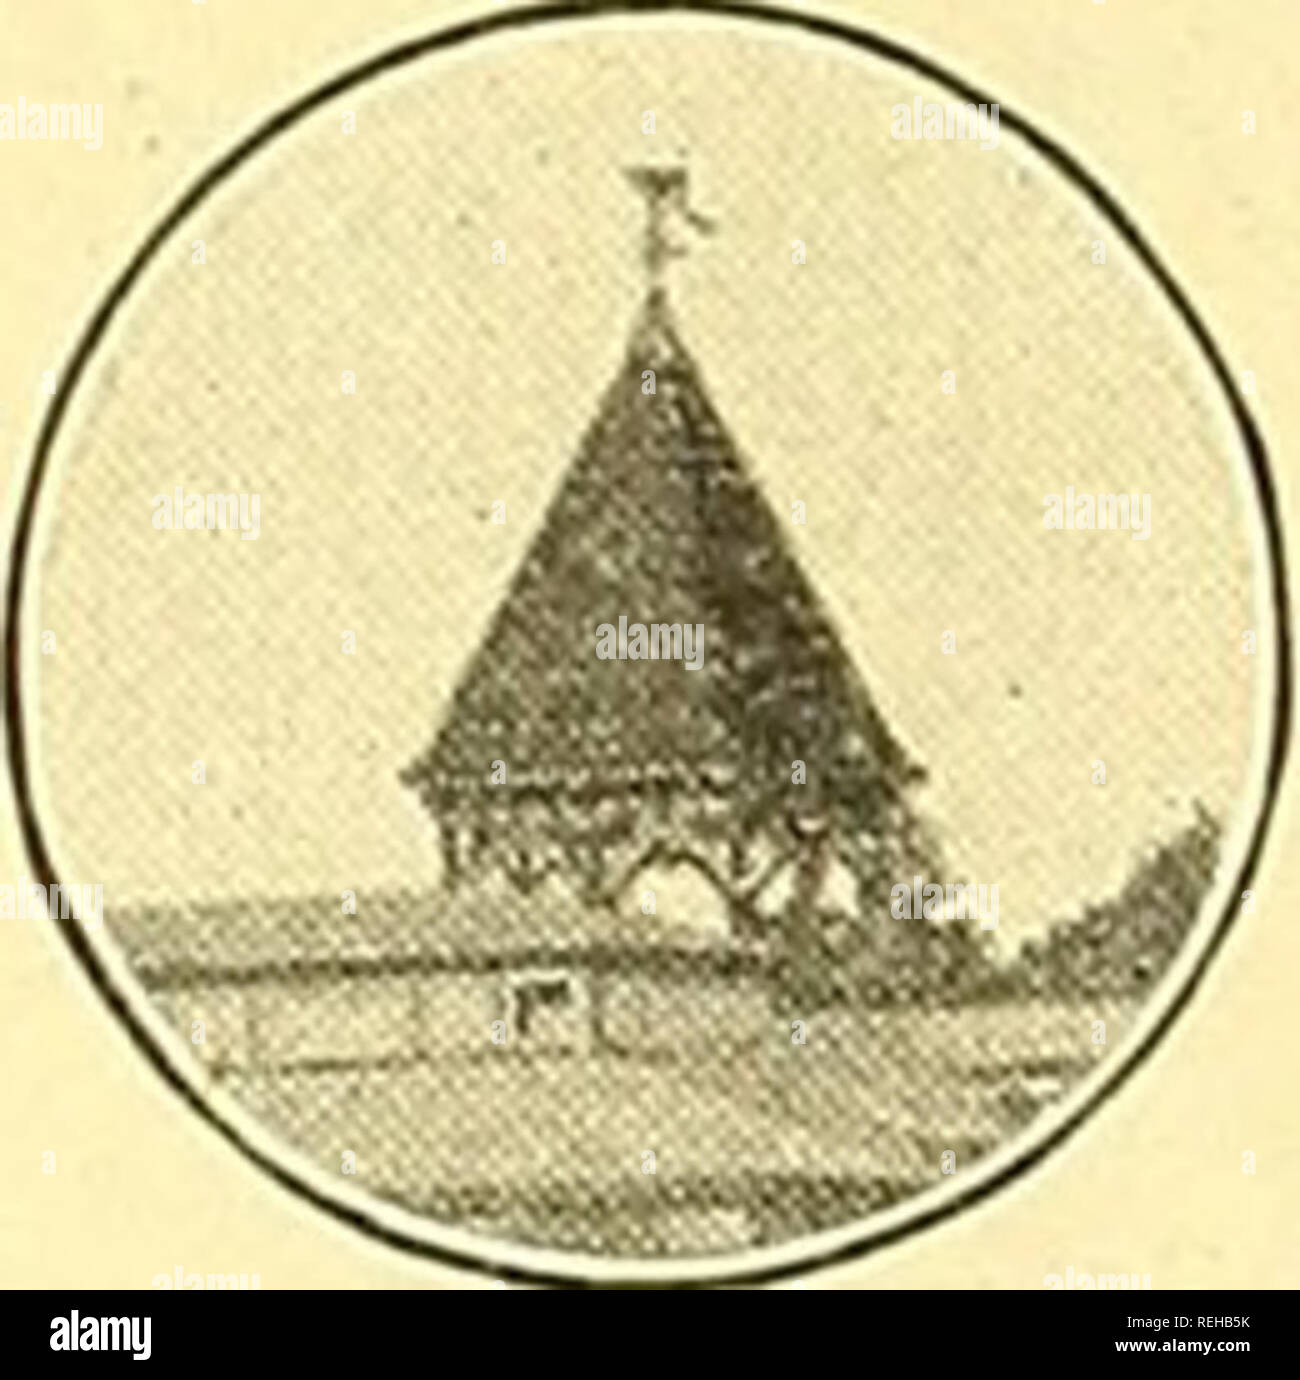 . Coming 1909 : Brockton Fair, Oct. 5-6-7-8. Horses; Exhibitions; Horse shows. Preserves, etc. $40 Draft Horses $65 No entrance fee. For best Four-horse Team, owned by ex- hibitor. Two premiums, $10, $5. For the best pair of Draft Horses, 2,400 pounds and over. Two premiums, $8, $5. For the best pair of Draft Horses under 2,400 pounds. Two premiums, $8, $5. For the best single Draft Horse, 1,200 pounds and over. Three premiums, $6, $4, $2. For the best single Draft Horse, under 1,200 pounds. Three premiums, $6, $4, $2. Animals entered in Four-horse Teams can also compete as pairs. Test of Draf - Stock Image